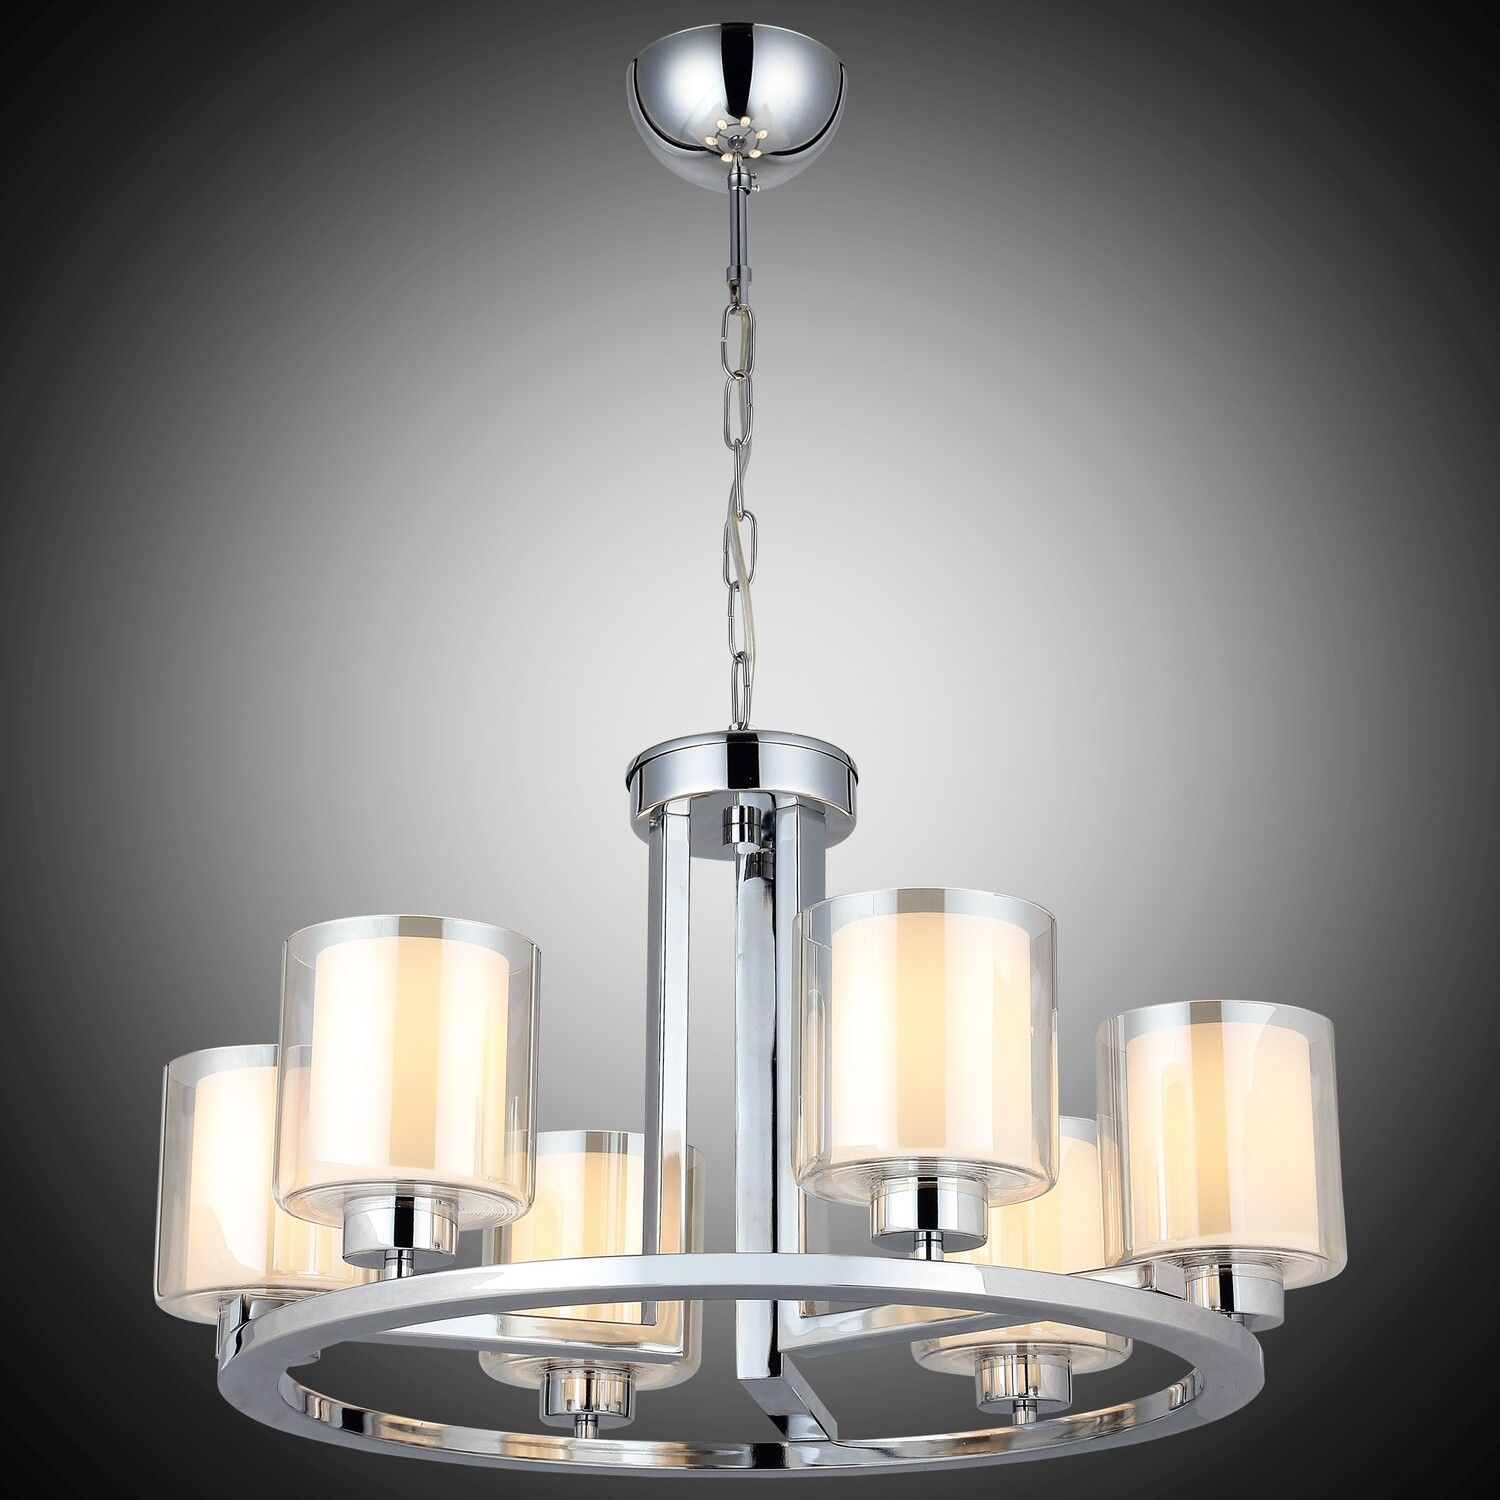 VODA 6 LIGHT CHANDELIER CHROME 6xE27